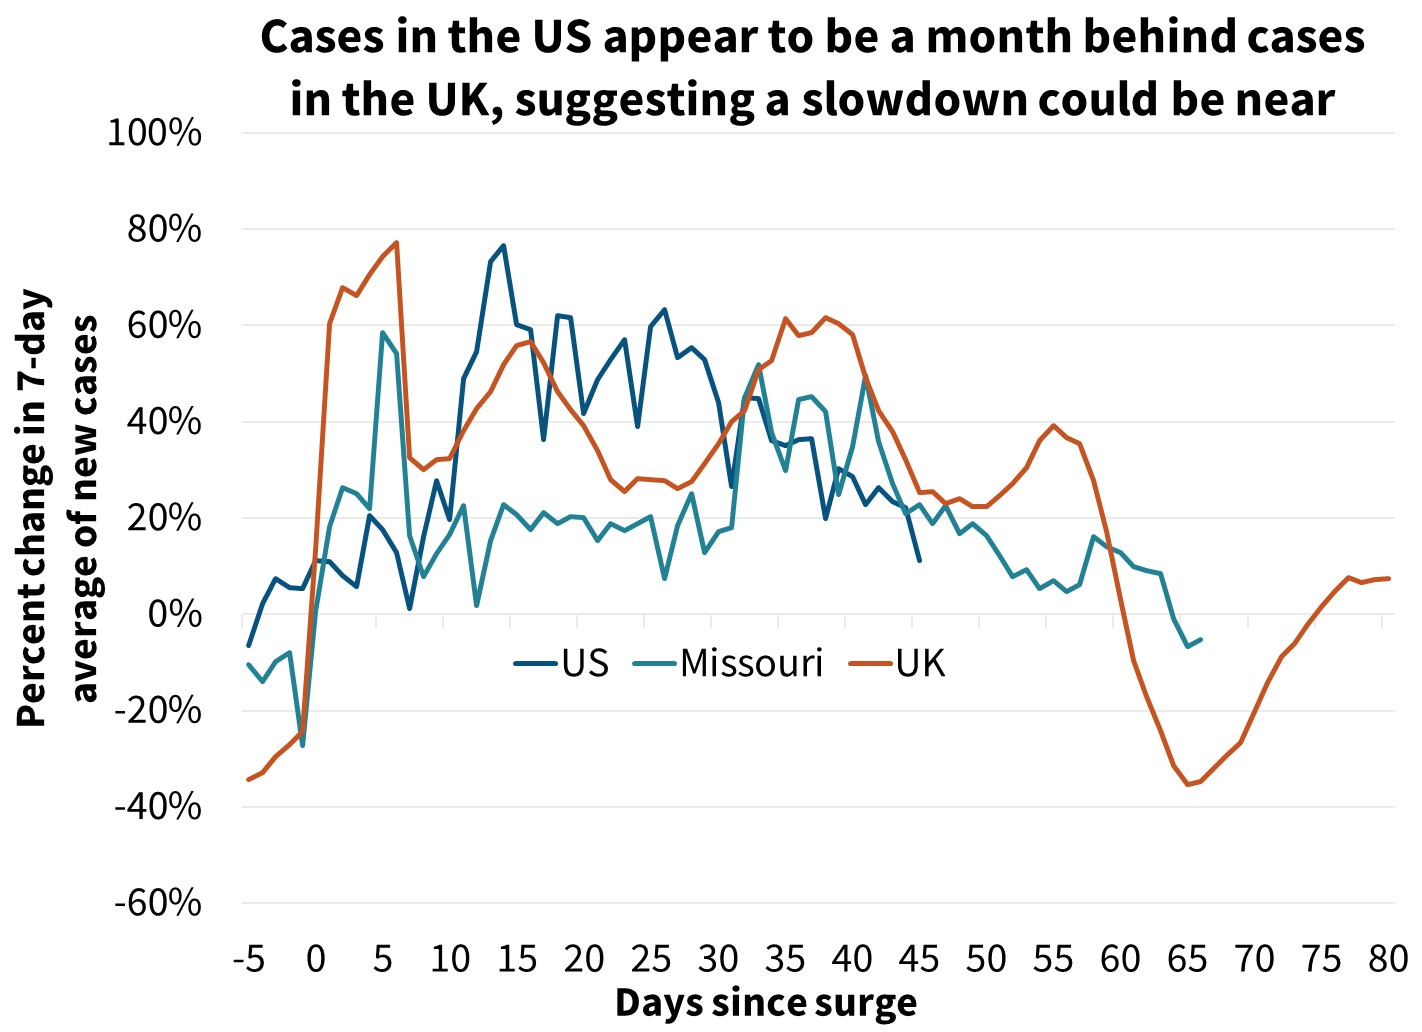 Cases in the US appear to be a month behind cases in the UK suggesting a slowdown could be near